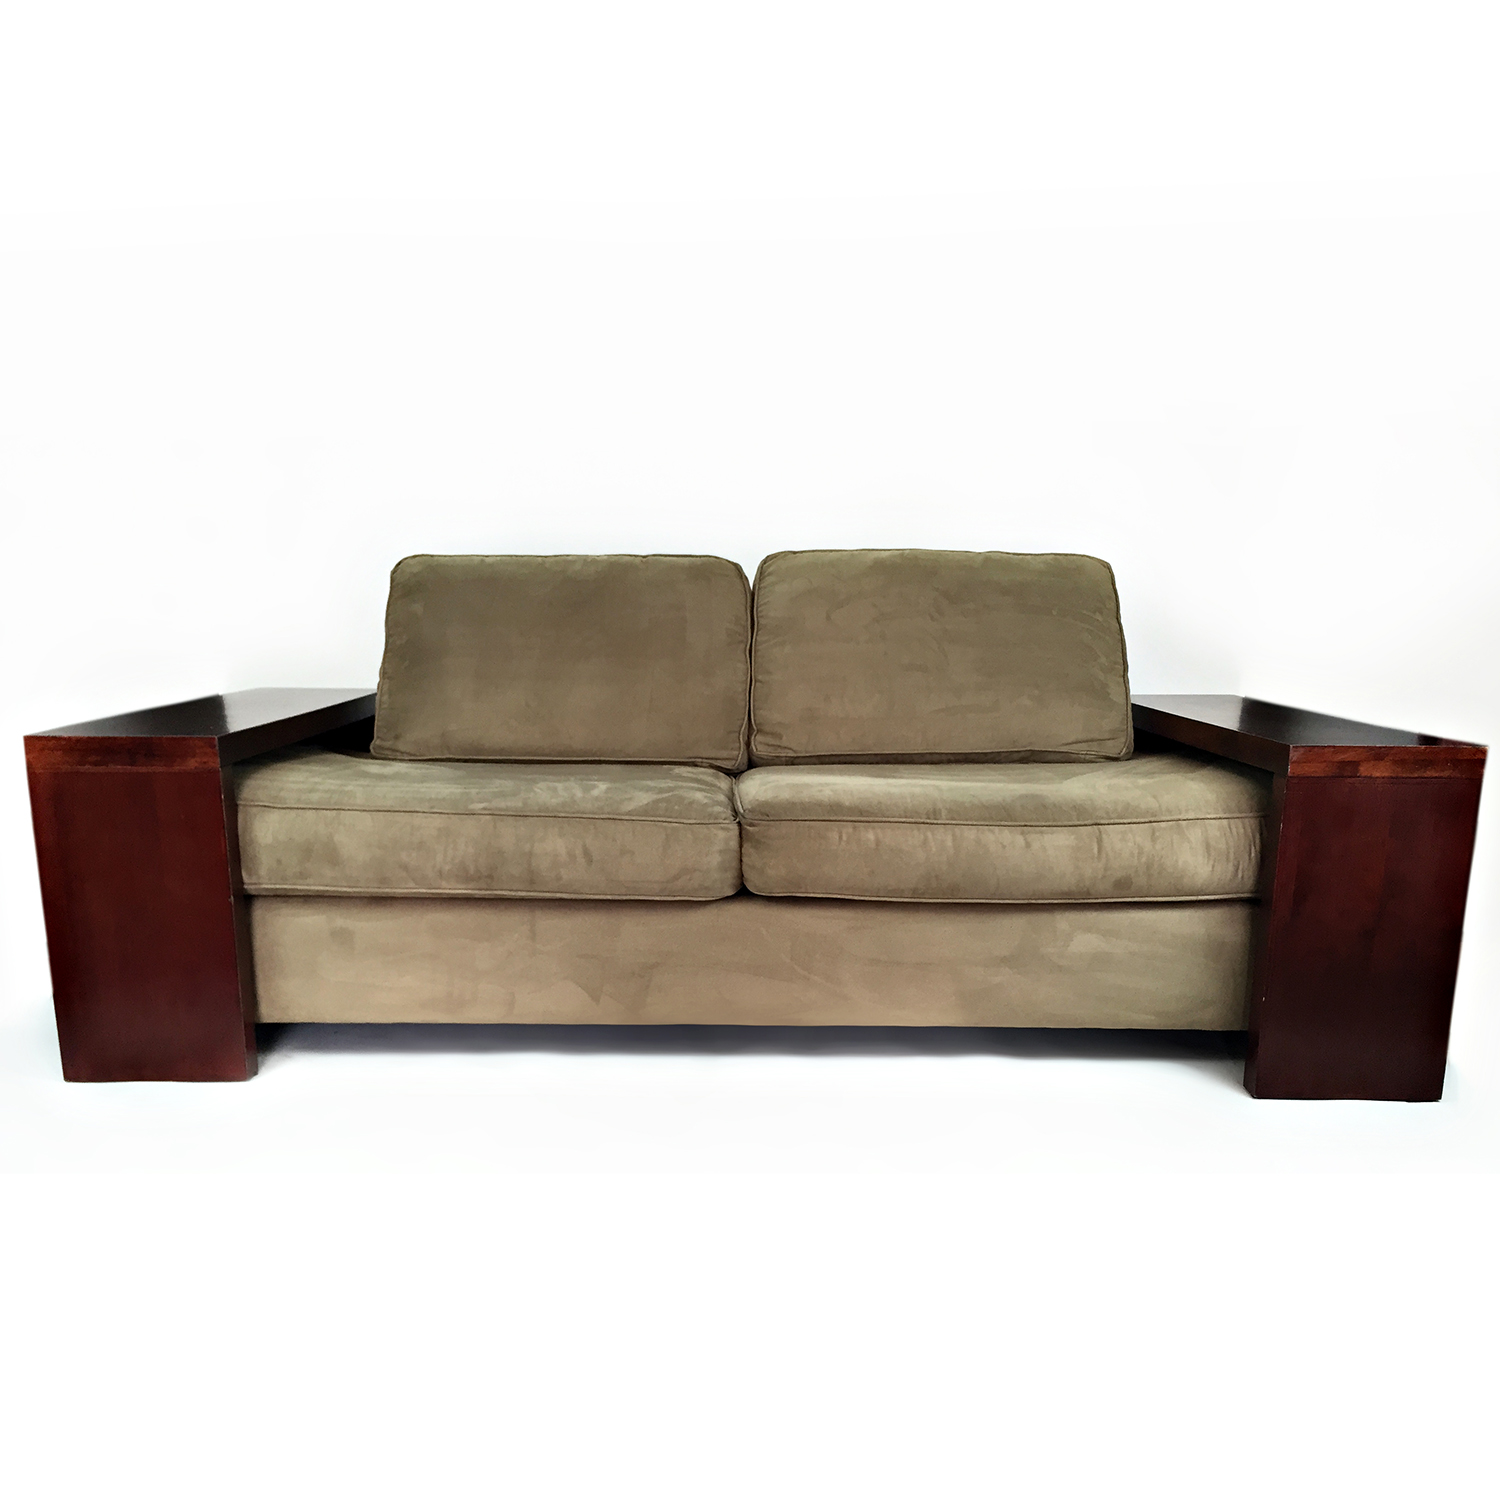 OFF Max Home Max Home Sofa with End Table Set Sofas